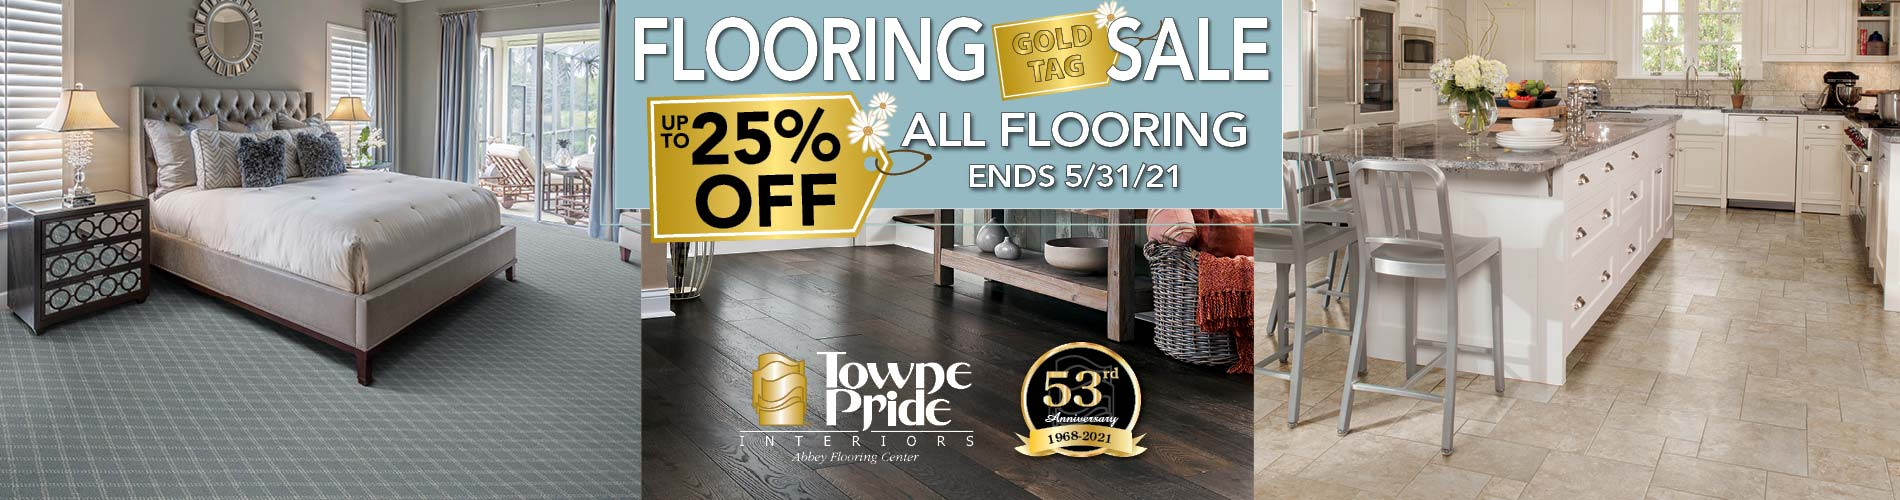 Take up to 25% off all flooring during our Gold Tag Flooring Sale